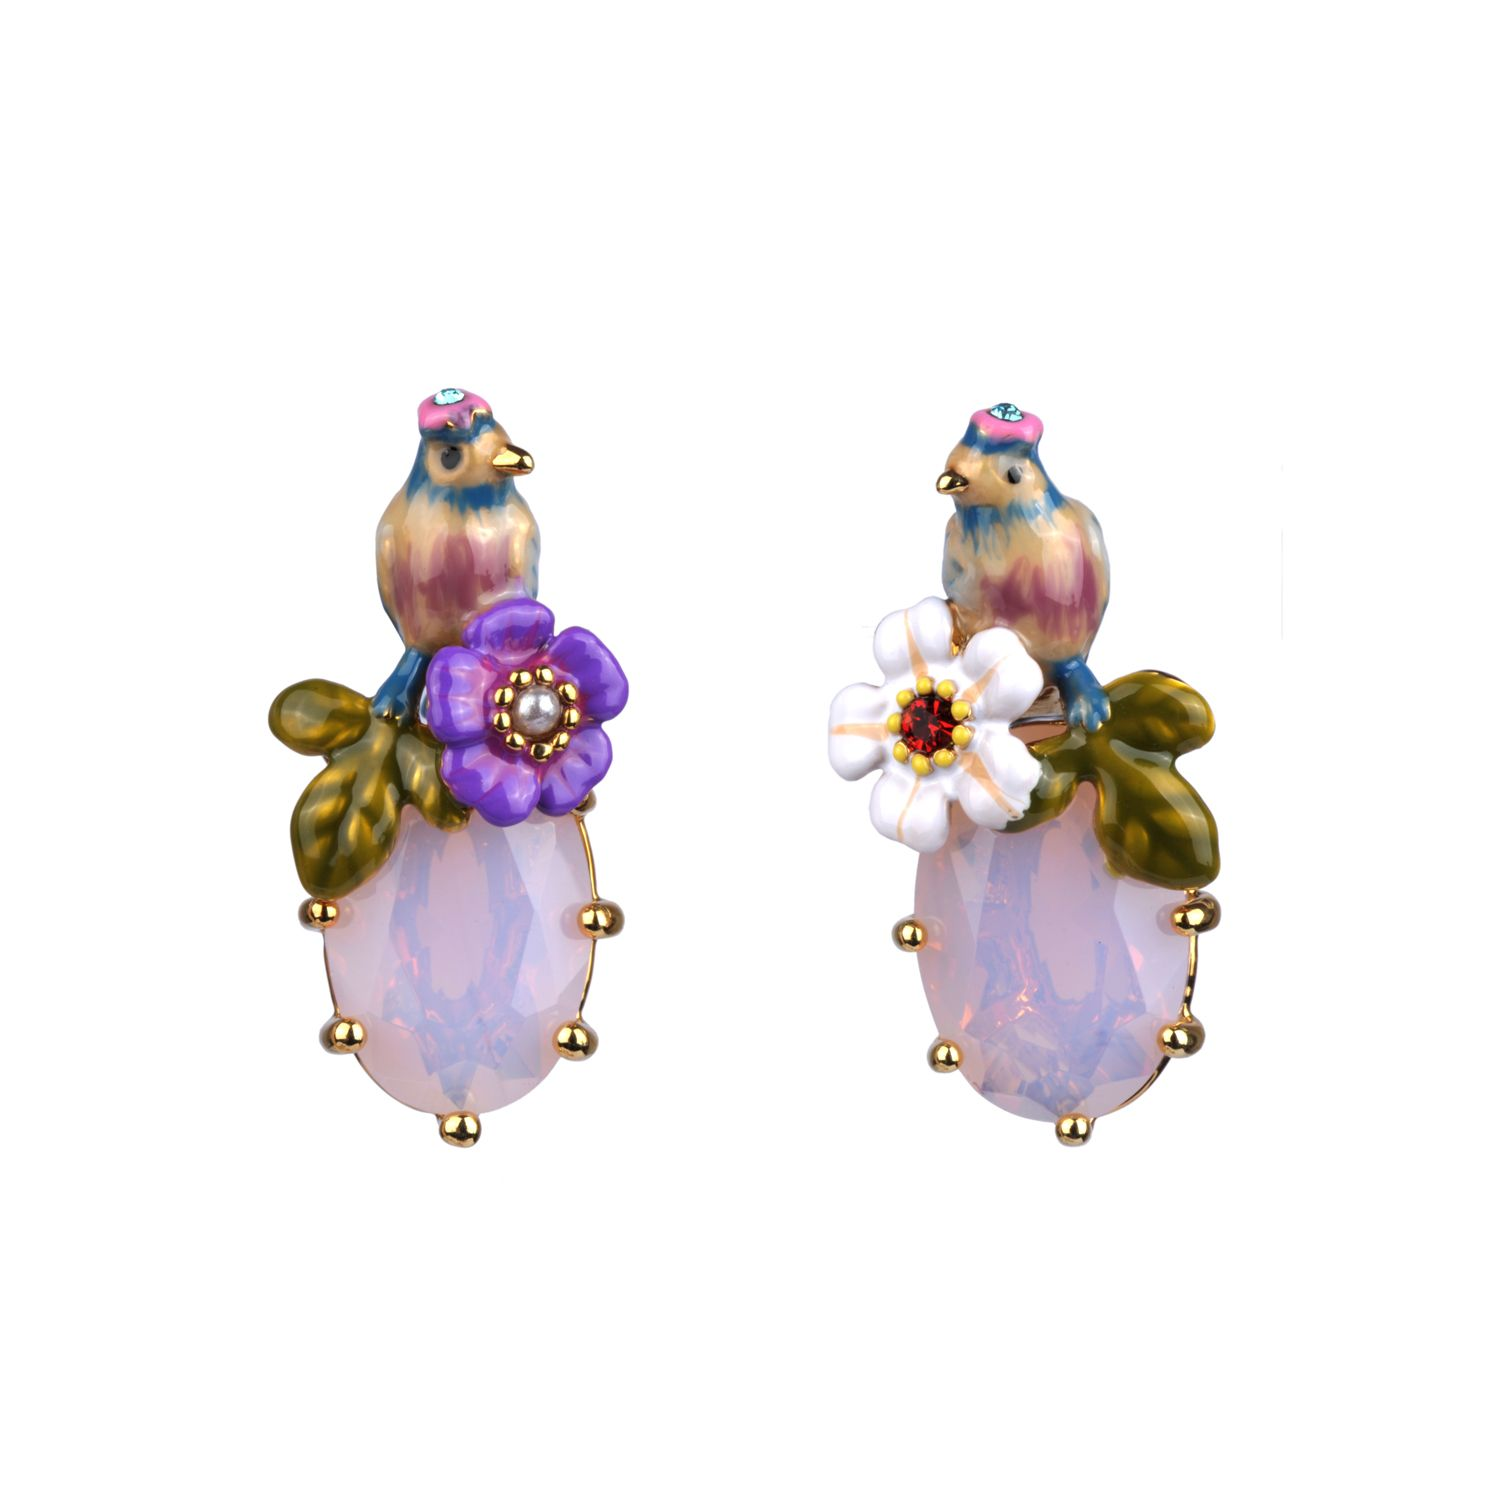 Eclatante discretion earrings